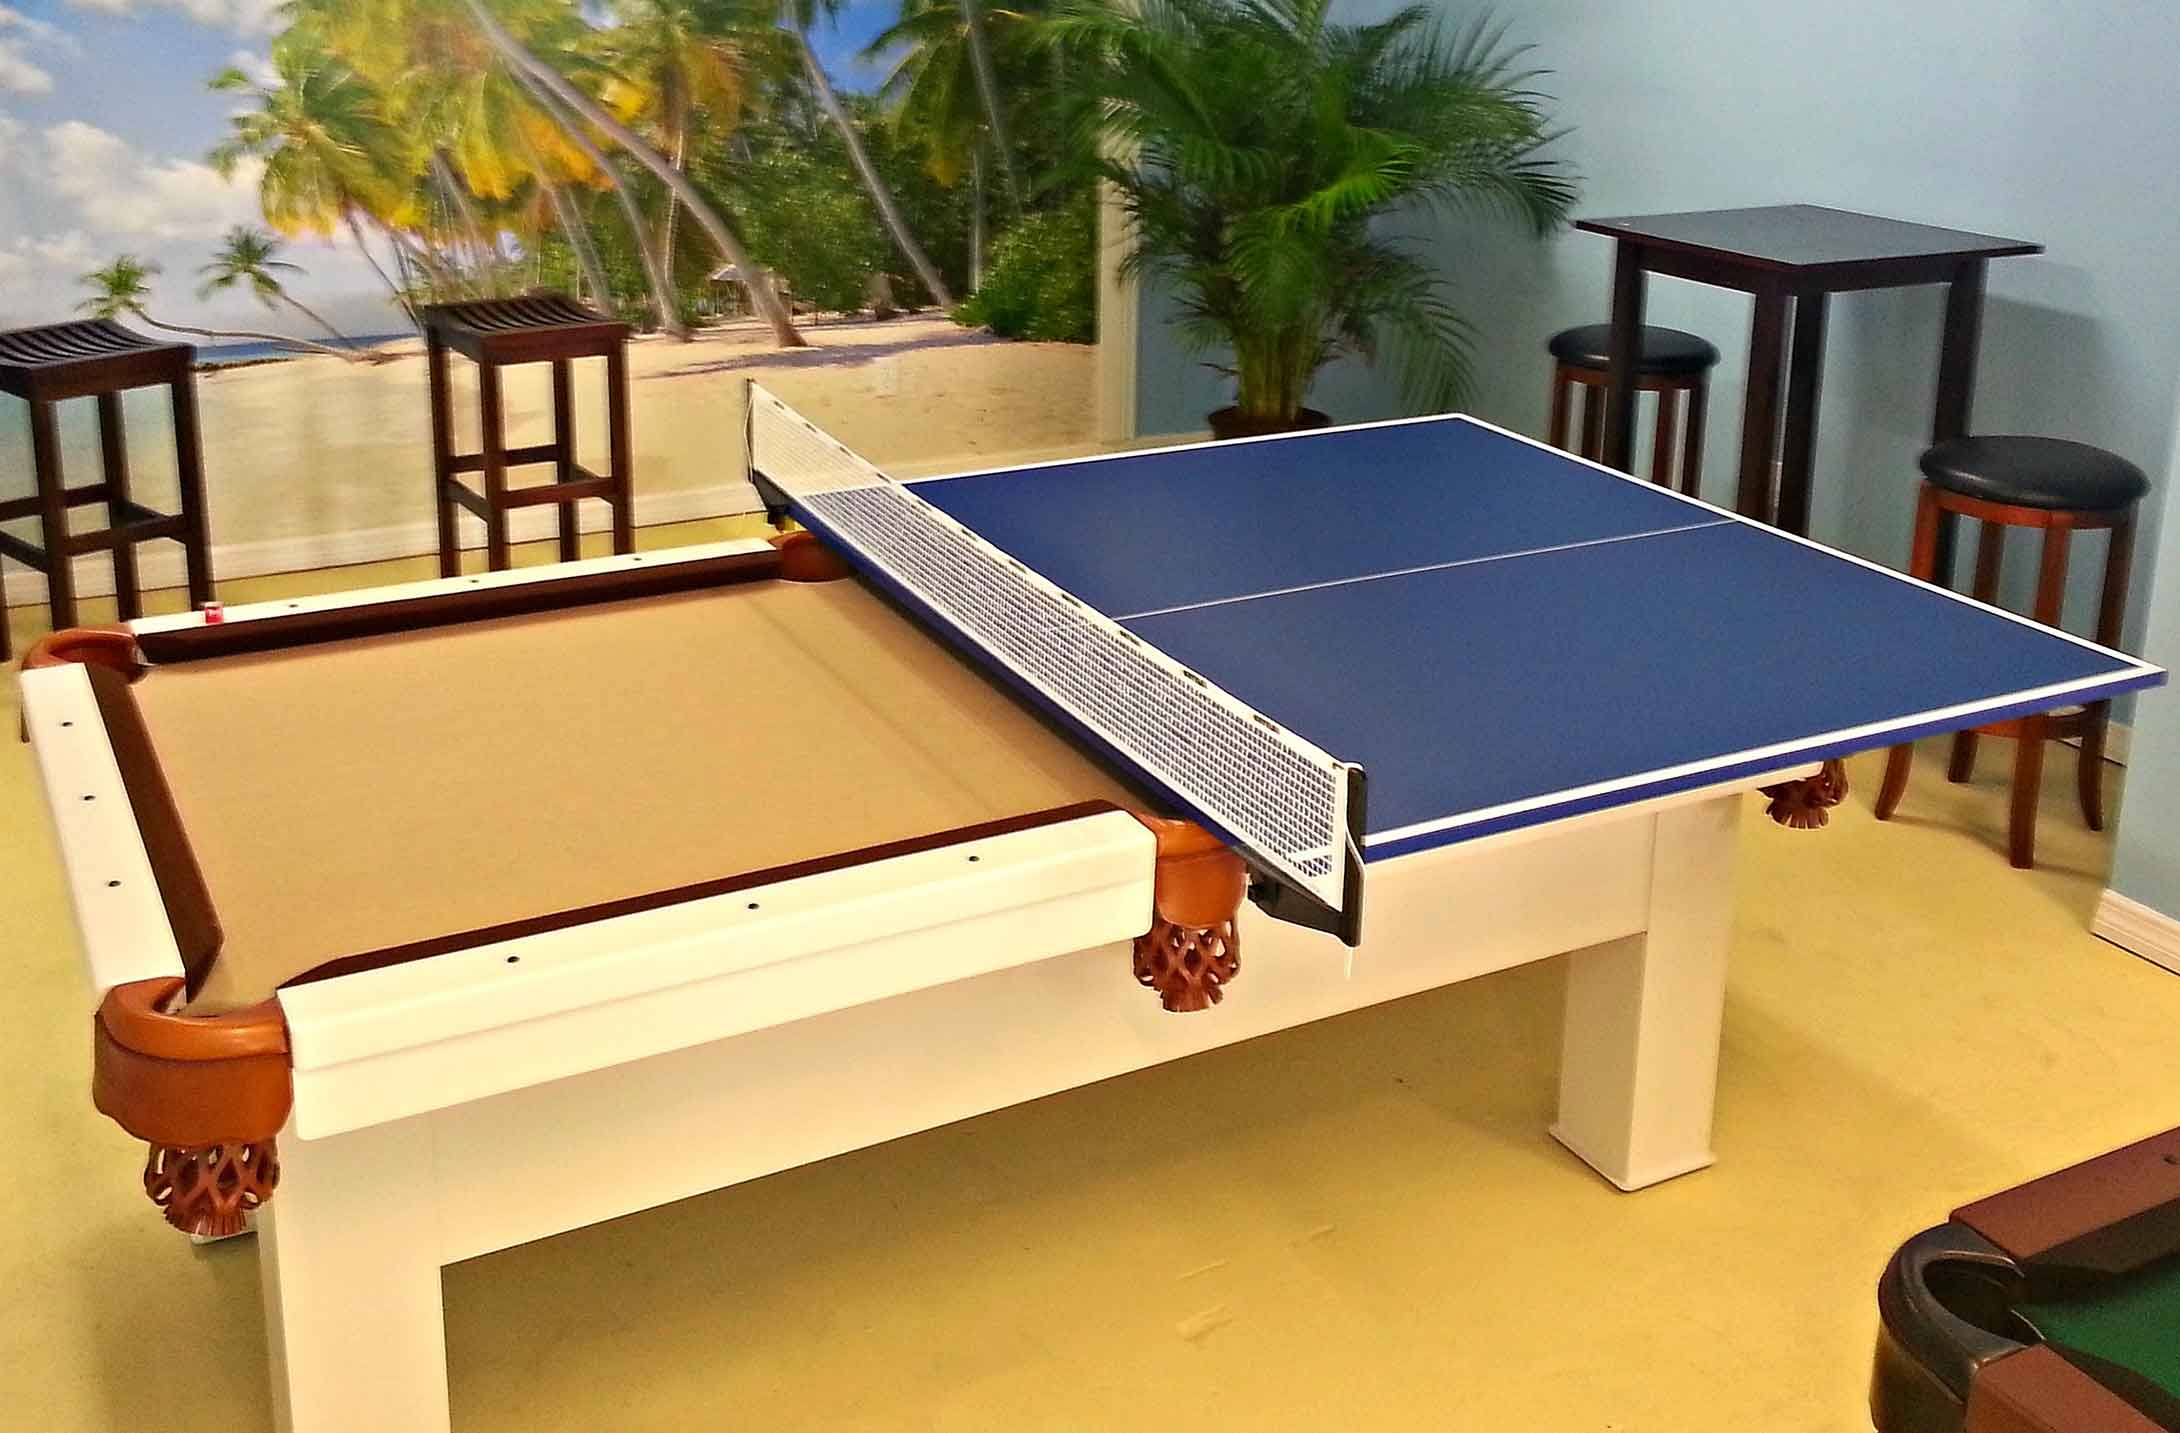 Table Tennis Conversion Top RR Outdoors Inc All Weather - Billiards ping pong table